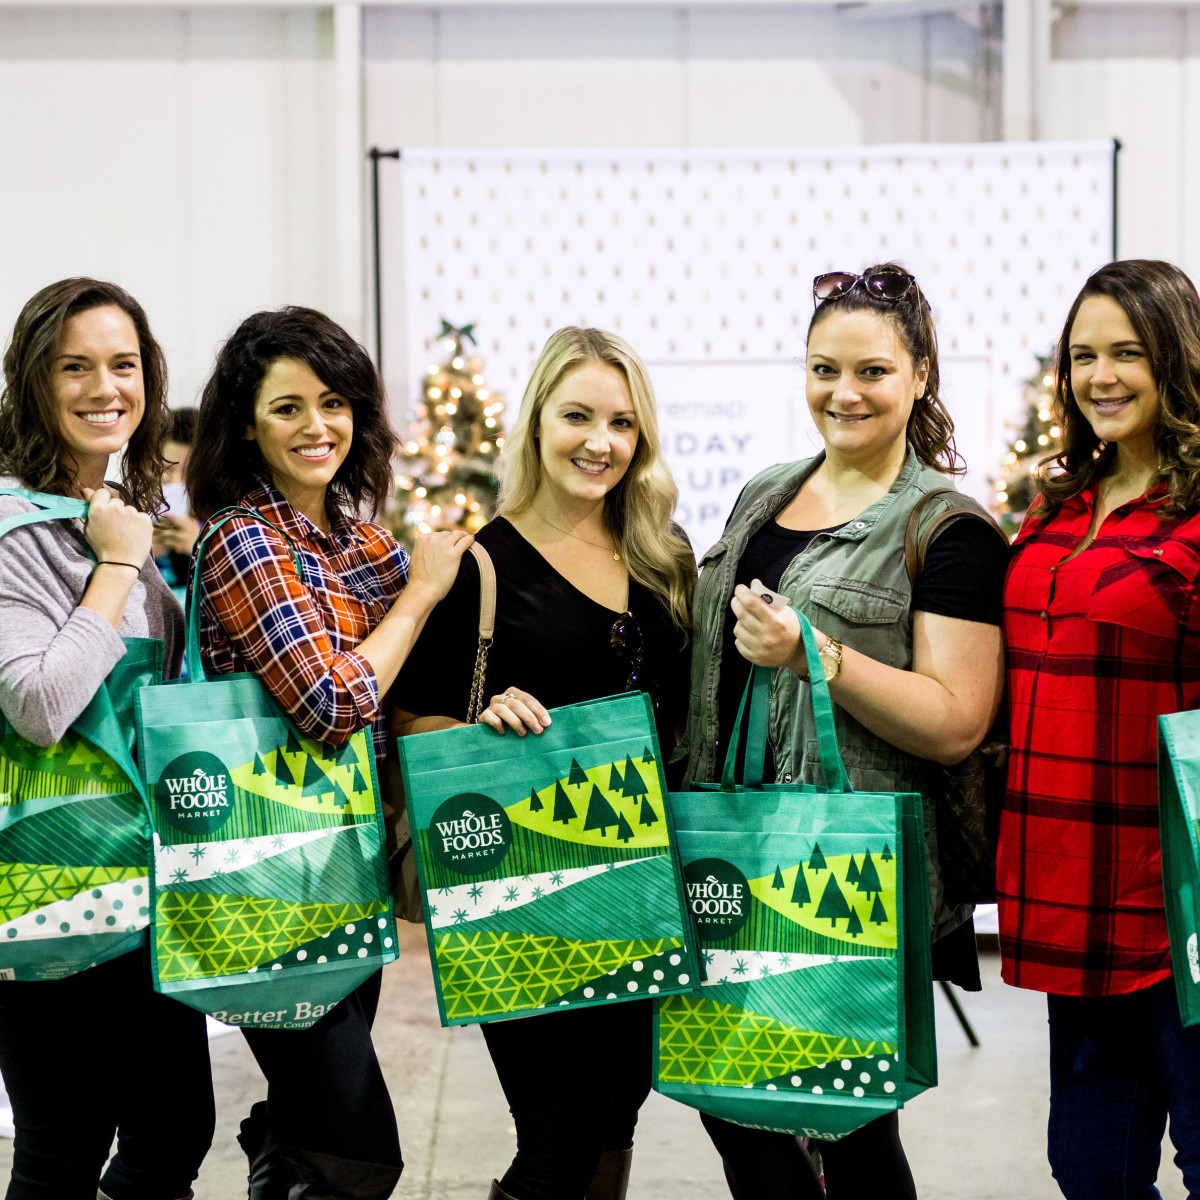 Houston, CultureMap Holiday Pop-Up Shop, November 2017, Kate Cammarata, Rachel Tillman, Kristina Anderson, Jennifer Anderson, Amber Bradley